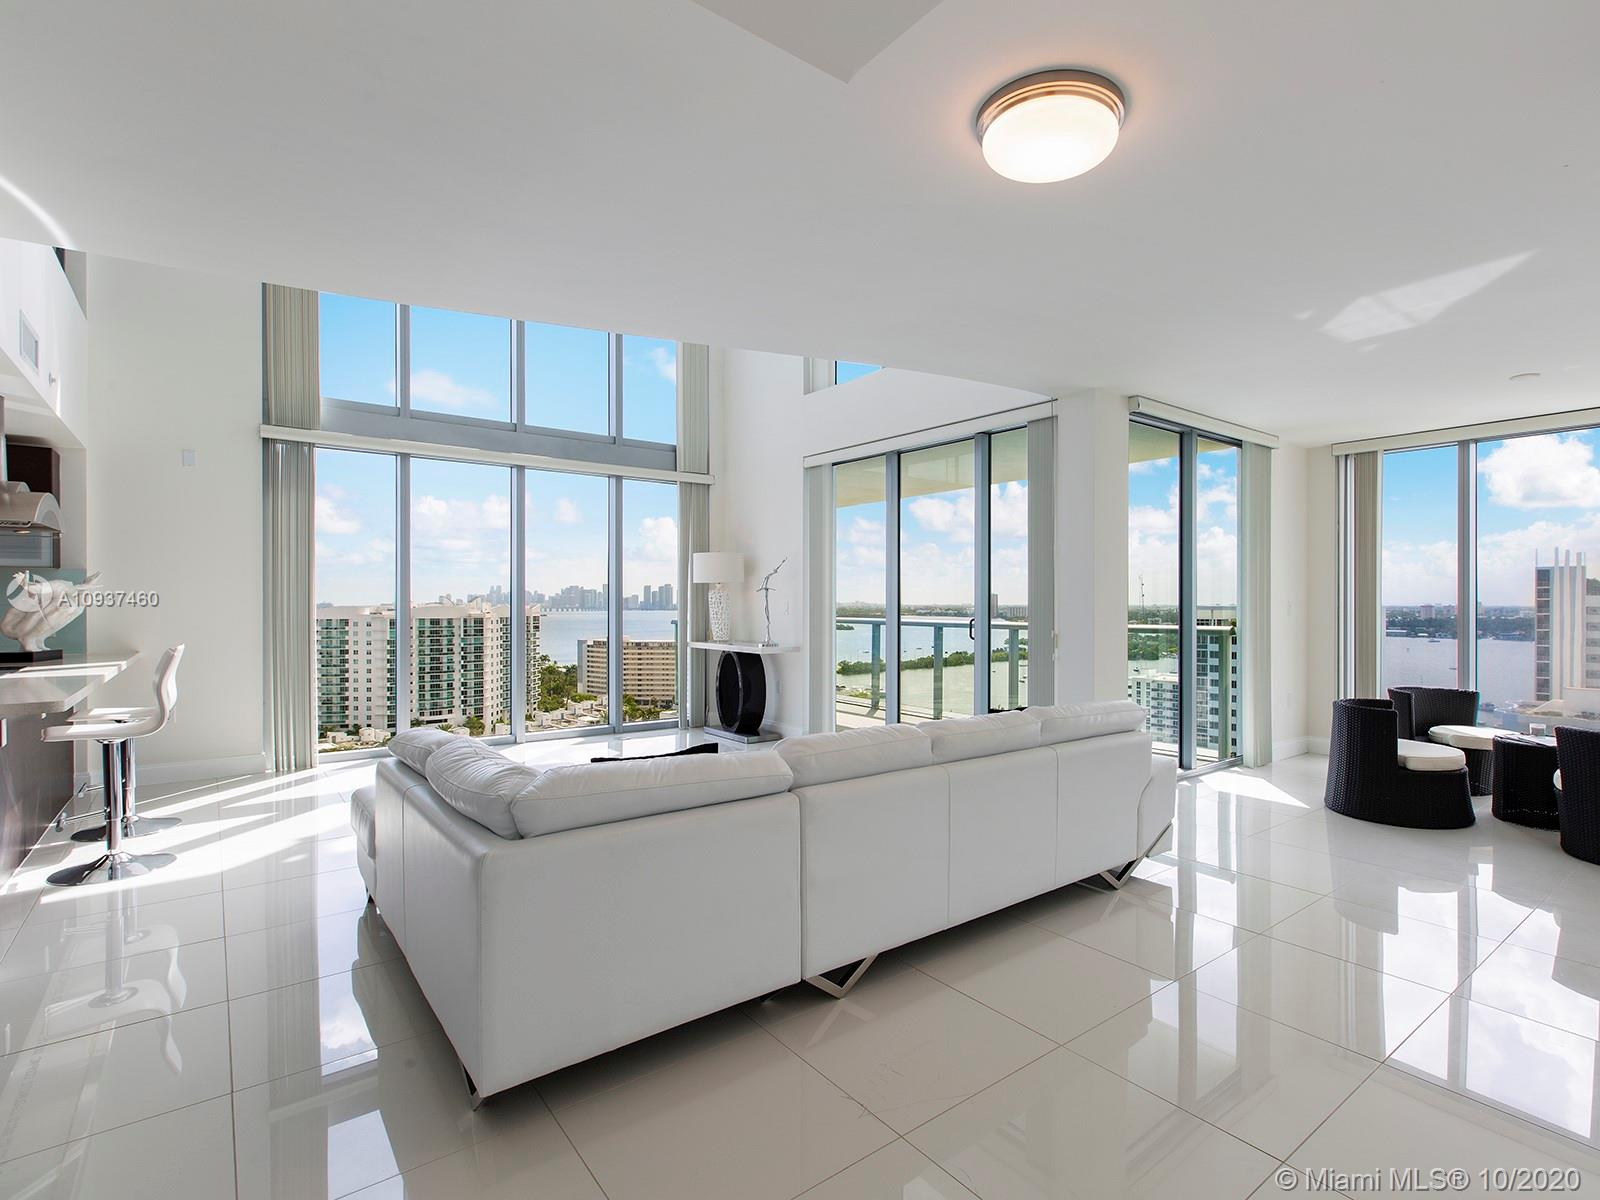 Photo of ELOQUENCE ON THE BAY COND Apt 1801 that clicks through to the property detail page